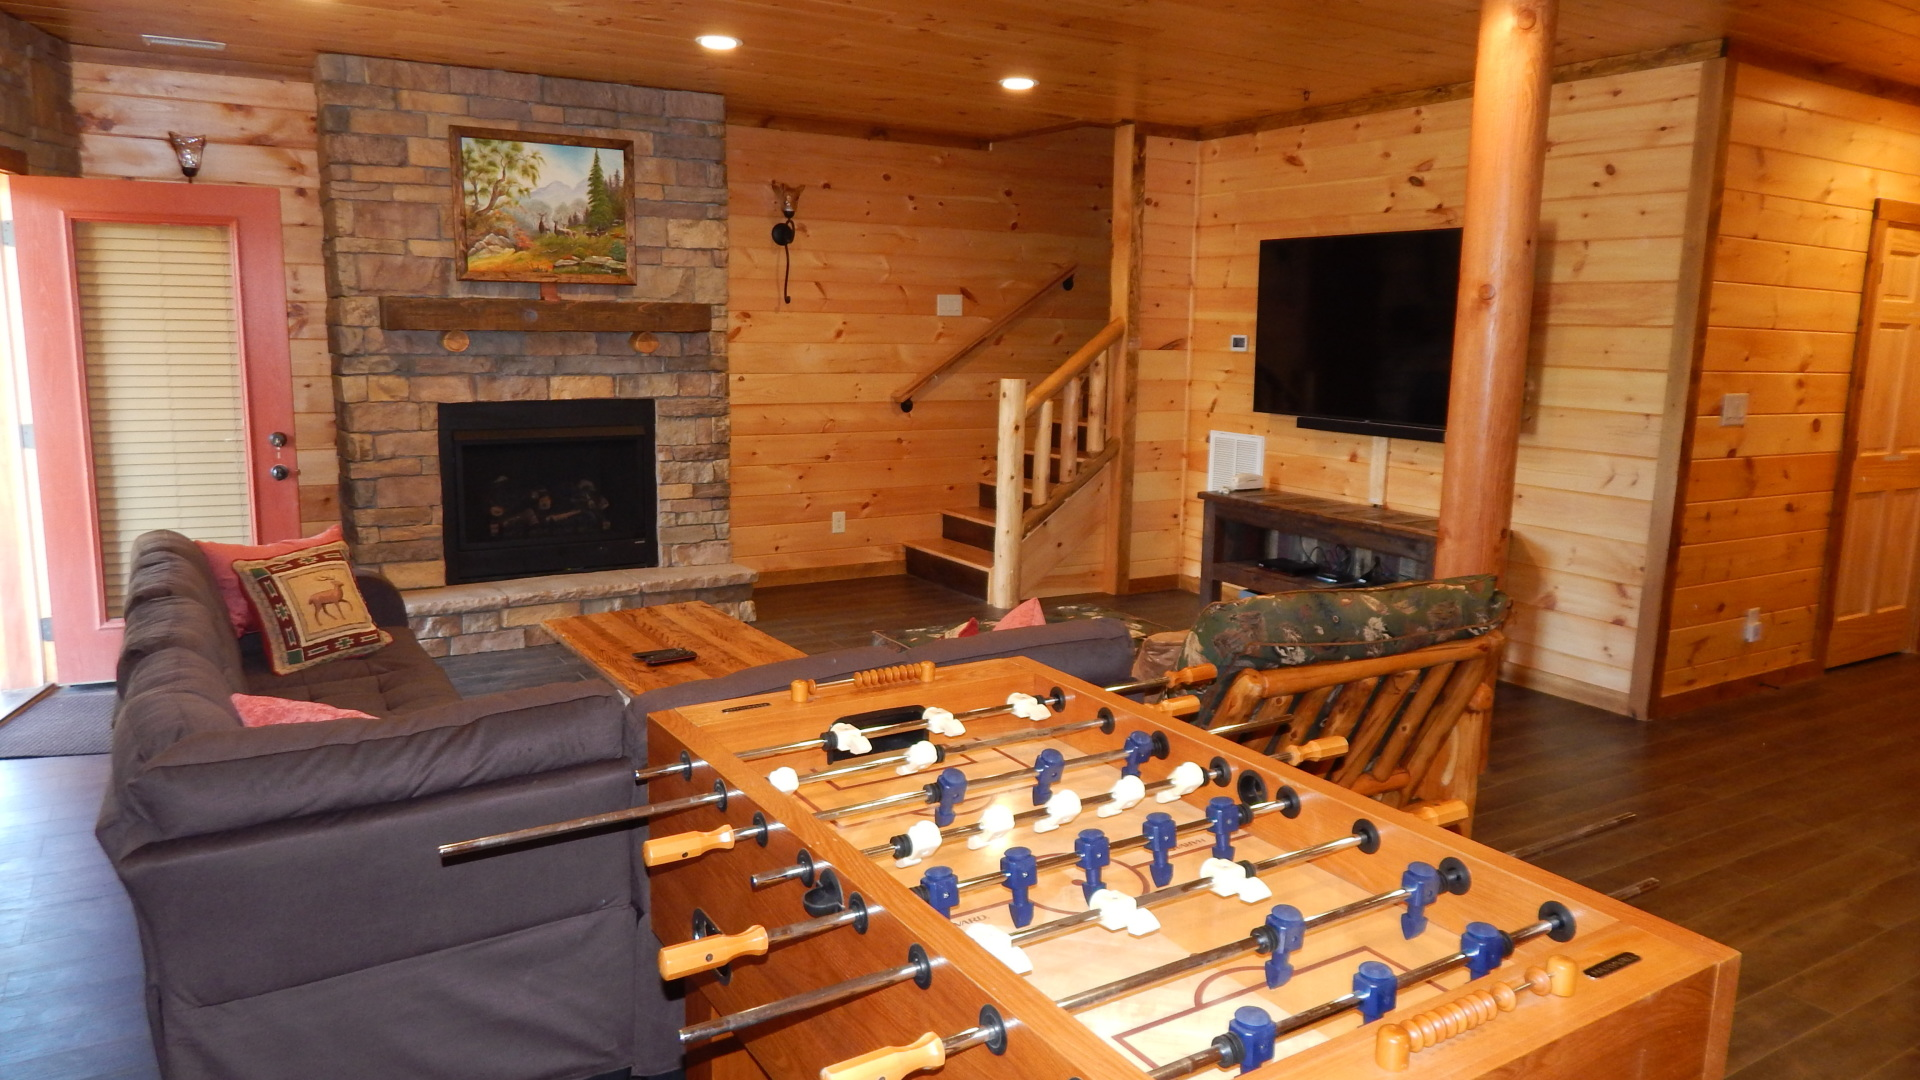 Cabin with mancave Big screen, arcade and foosball